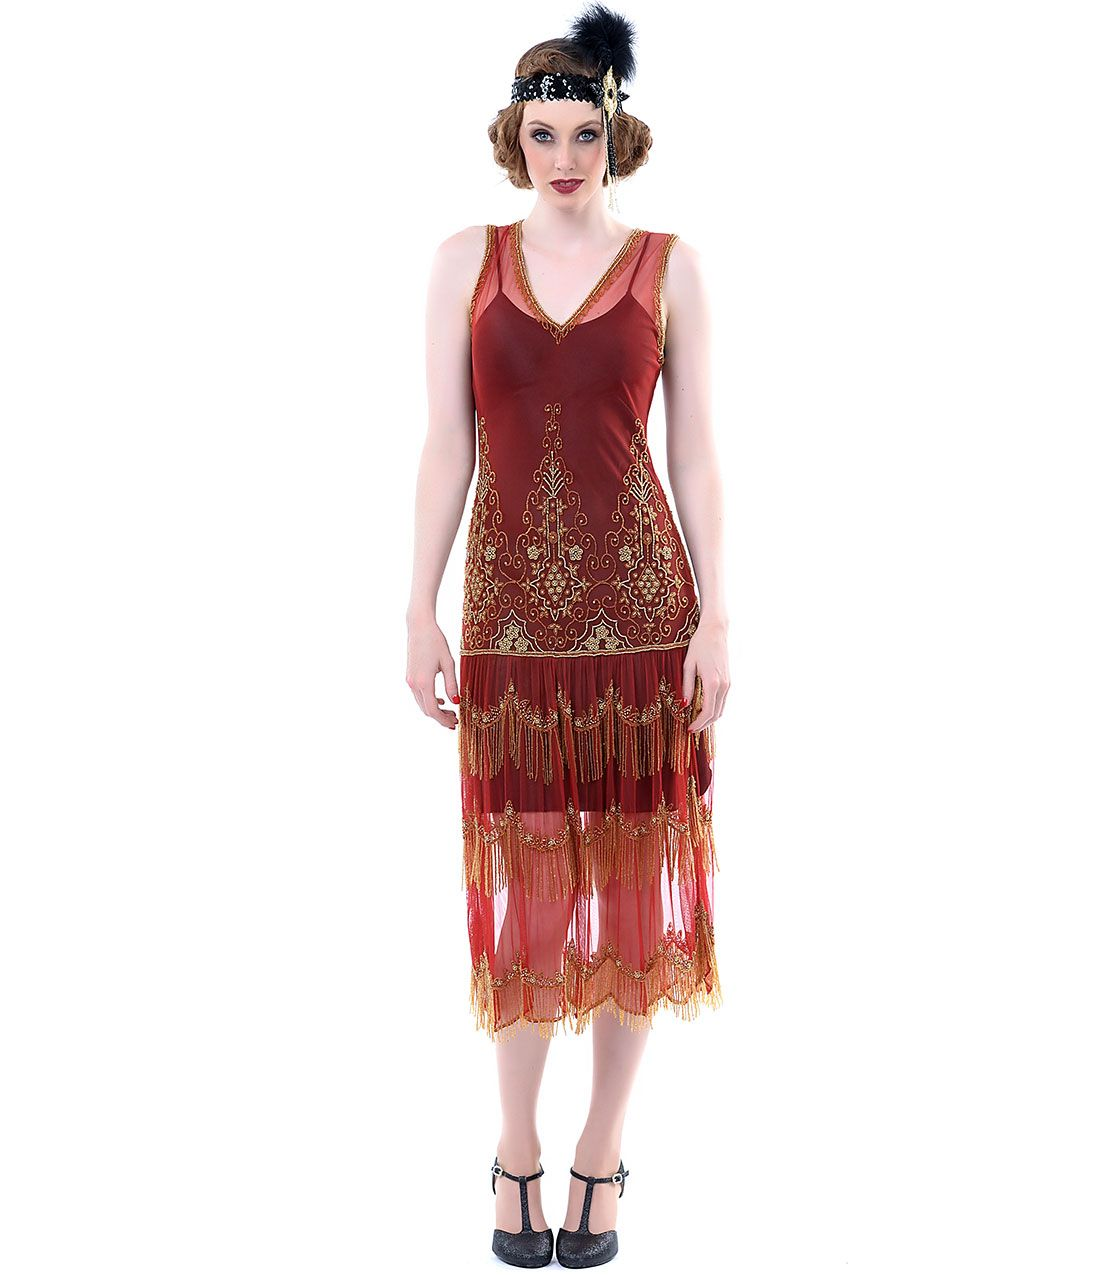 Red and gold beaded dress